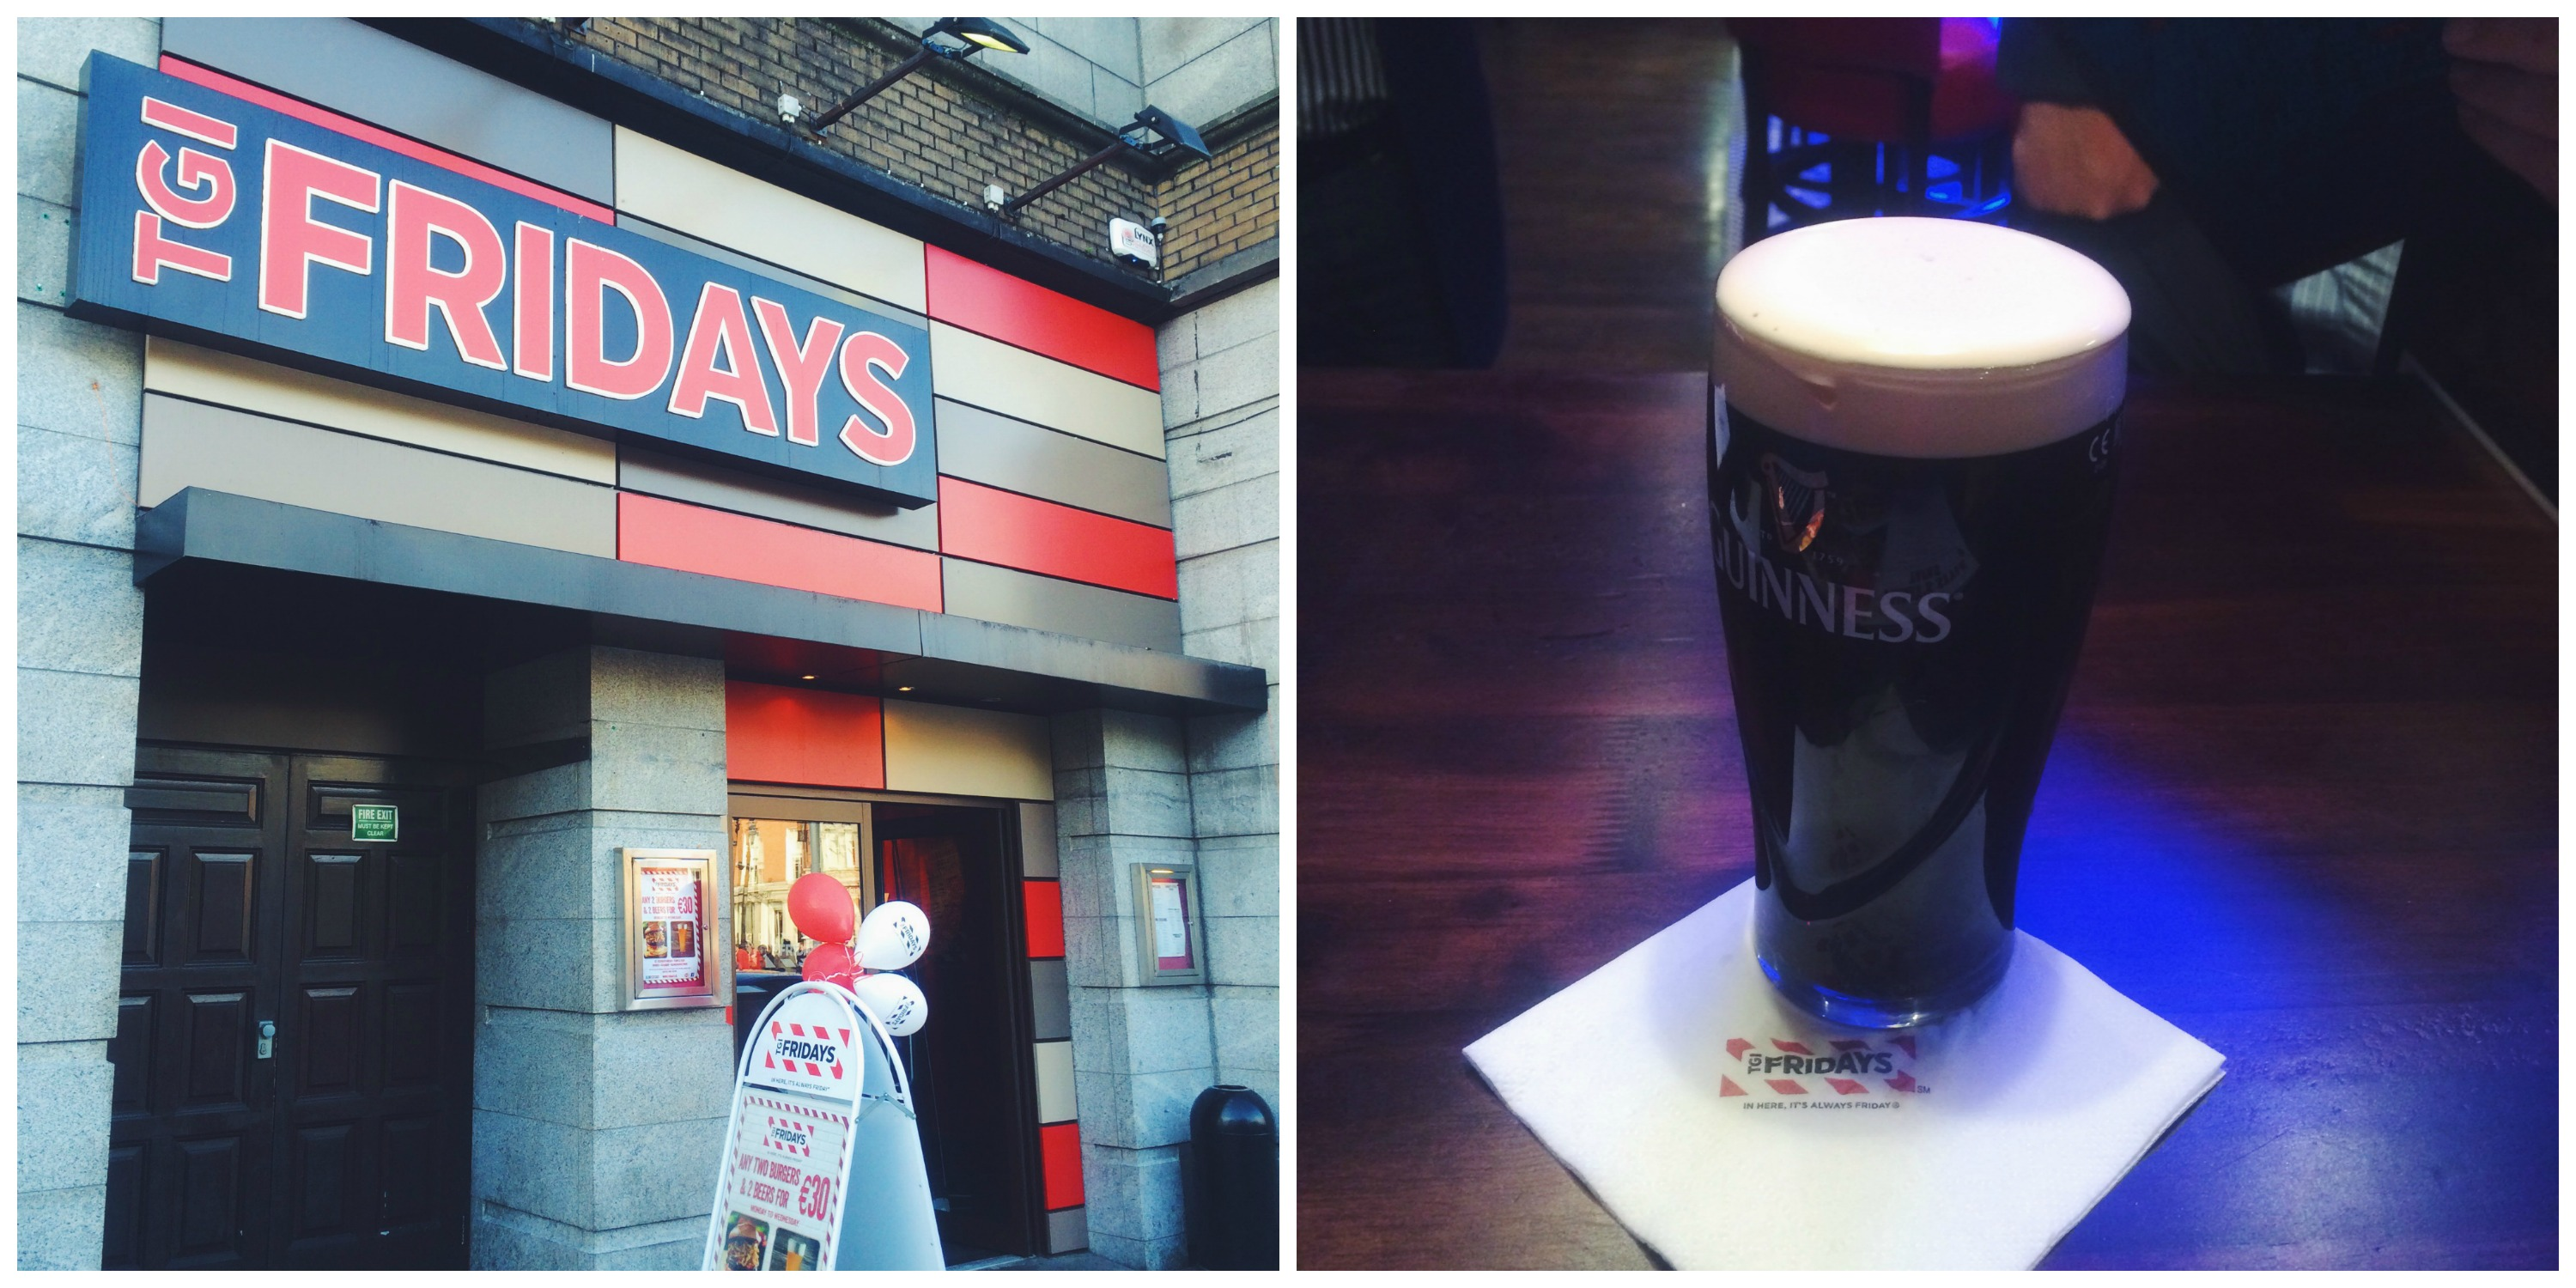 Fridays for Guinness